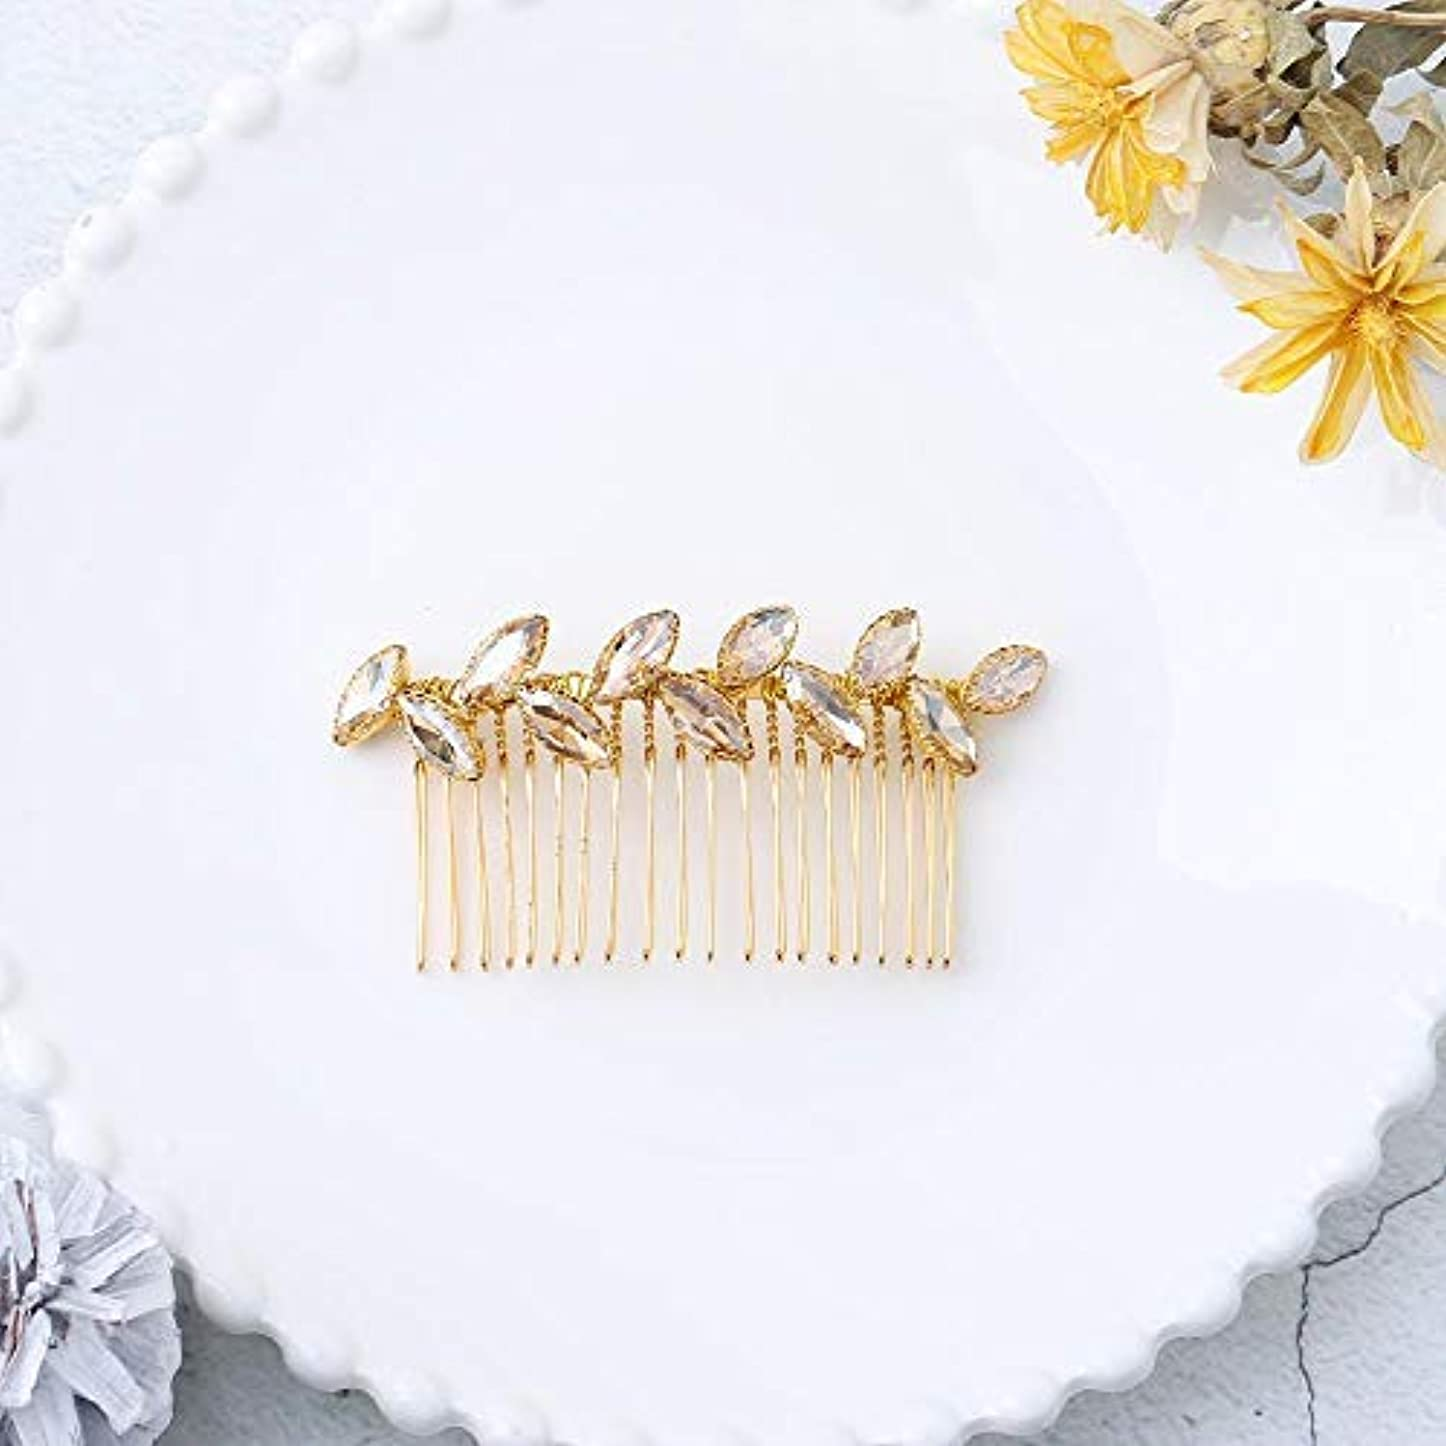 一掃するジョガーカテゴリーJovono Bride Wedding Hair Comb Bridal Headpieces with Champagne Rhinestone for Women and Girls (Gold) [並行輸入品]